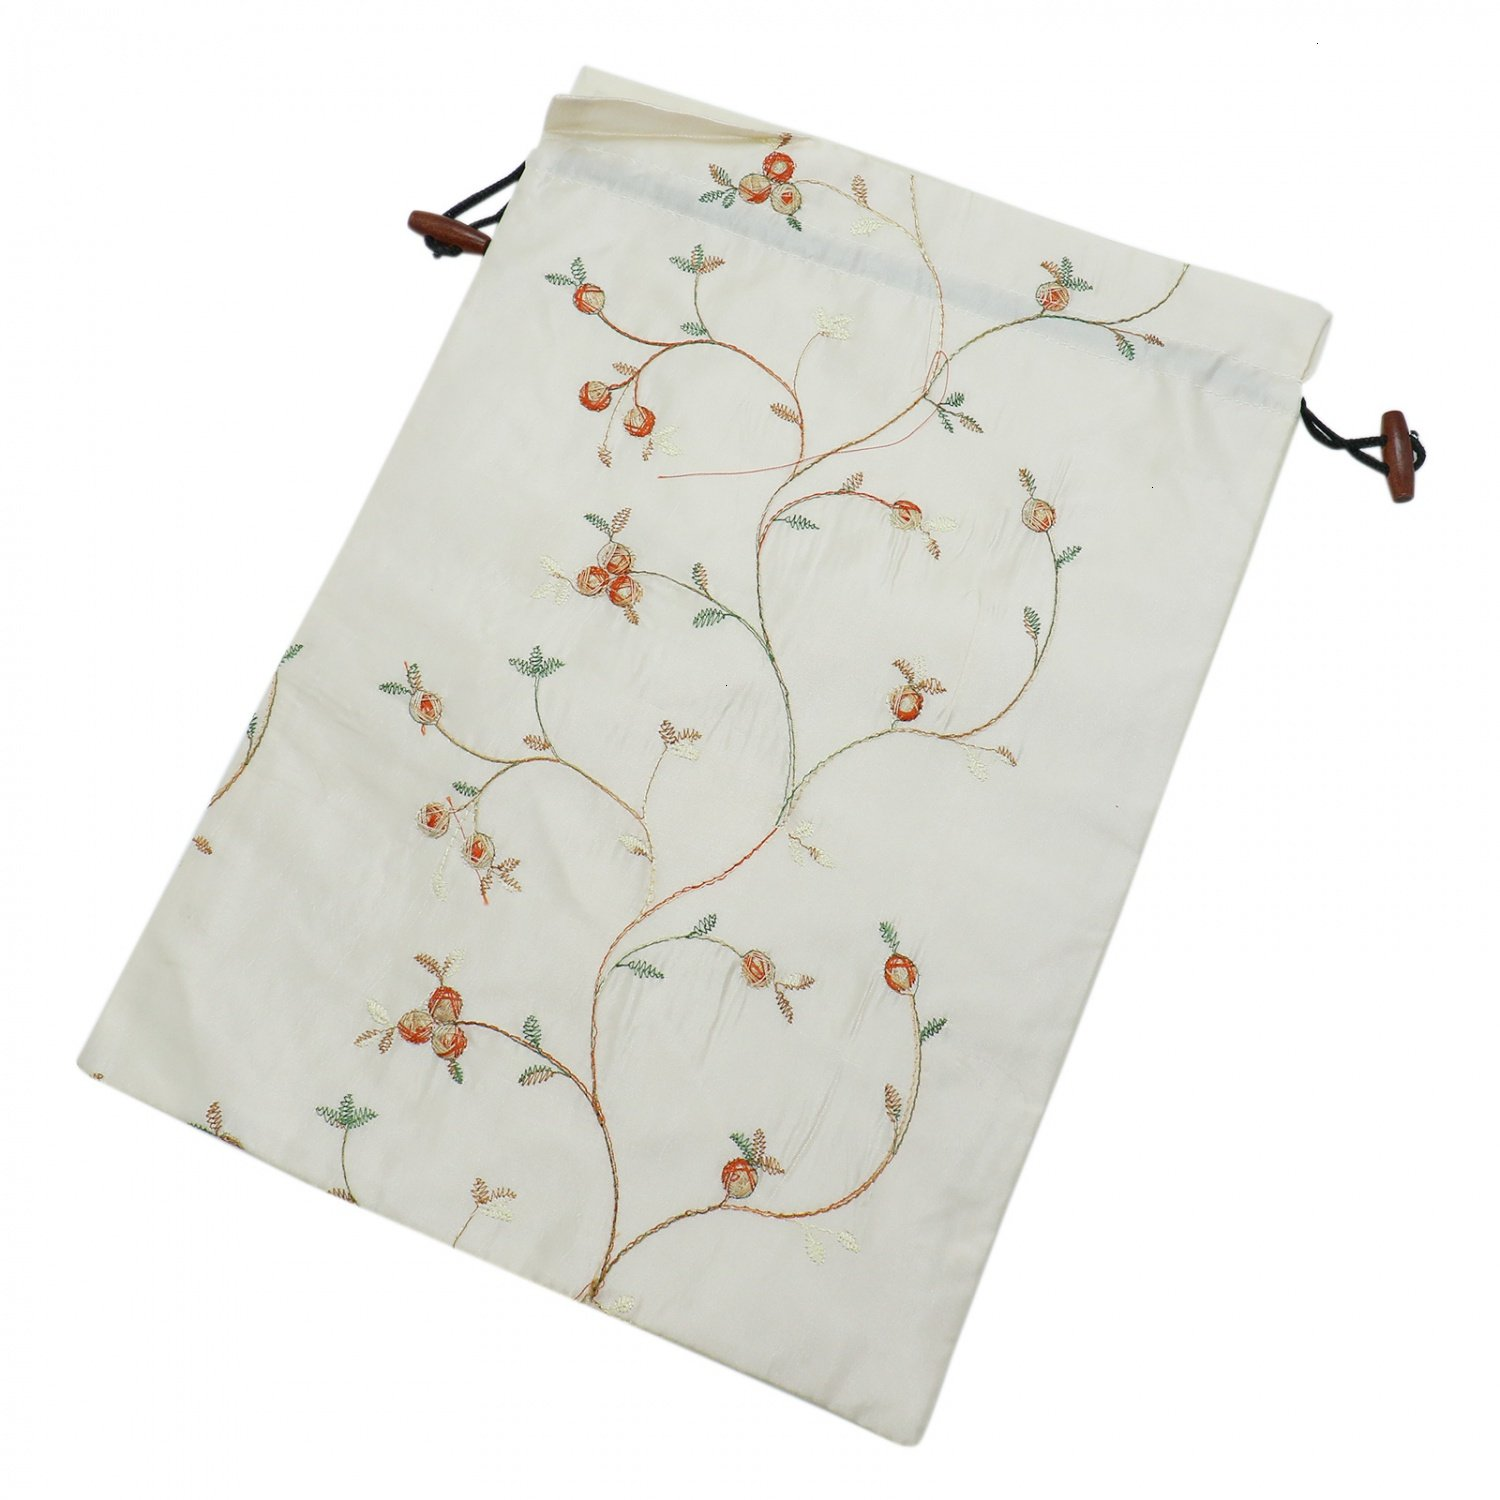 Buorsa Flower Design Embroidered Silk Jacquard Travel Bag Underwear Cloth Shoe Bags Pouch Purse , Set of 3--- 14'' x 11''(L x W) by Buorsa (Image #2)